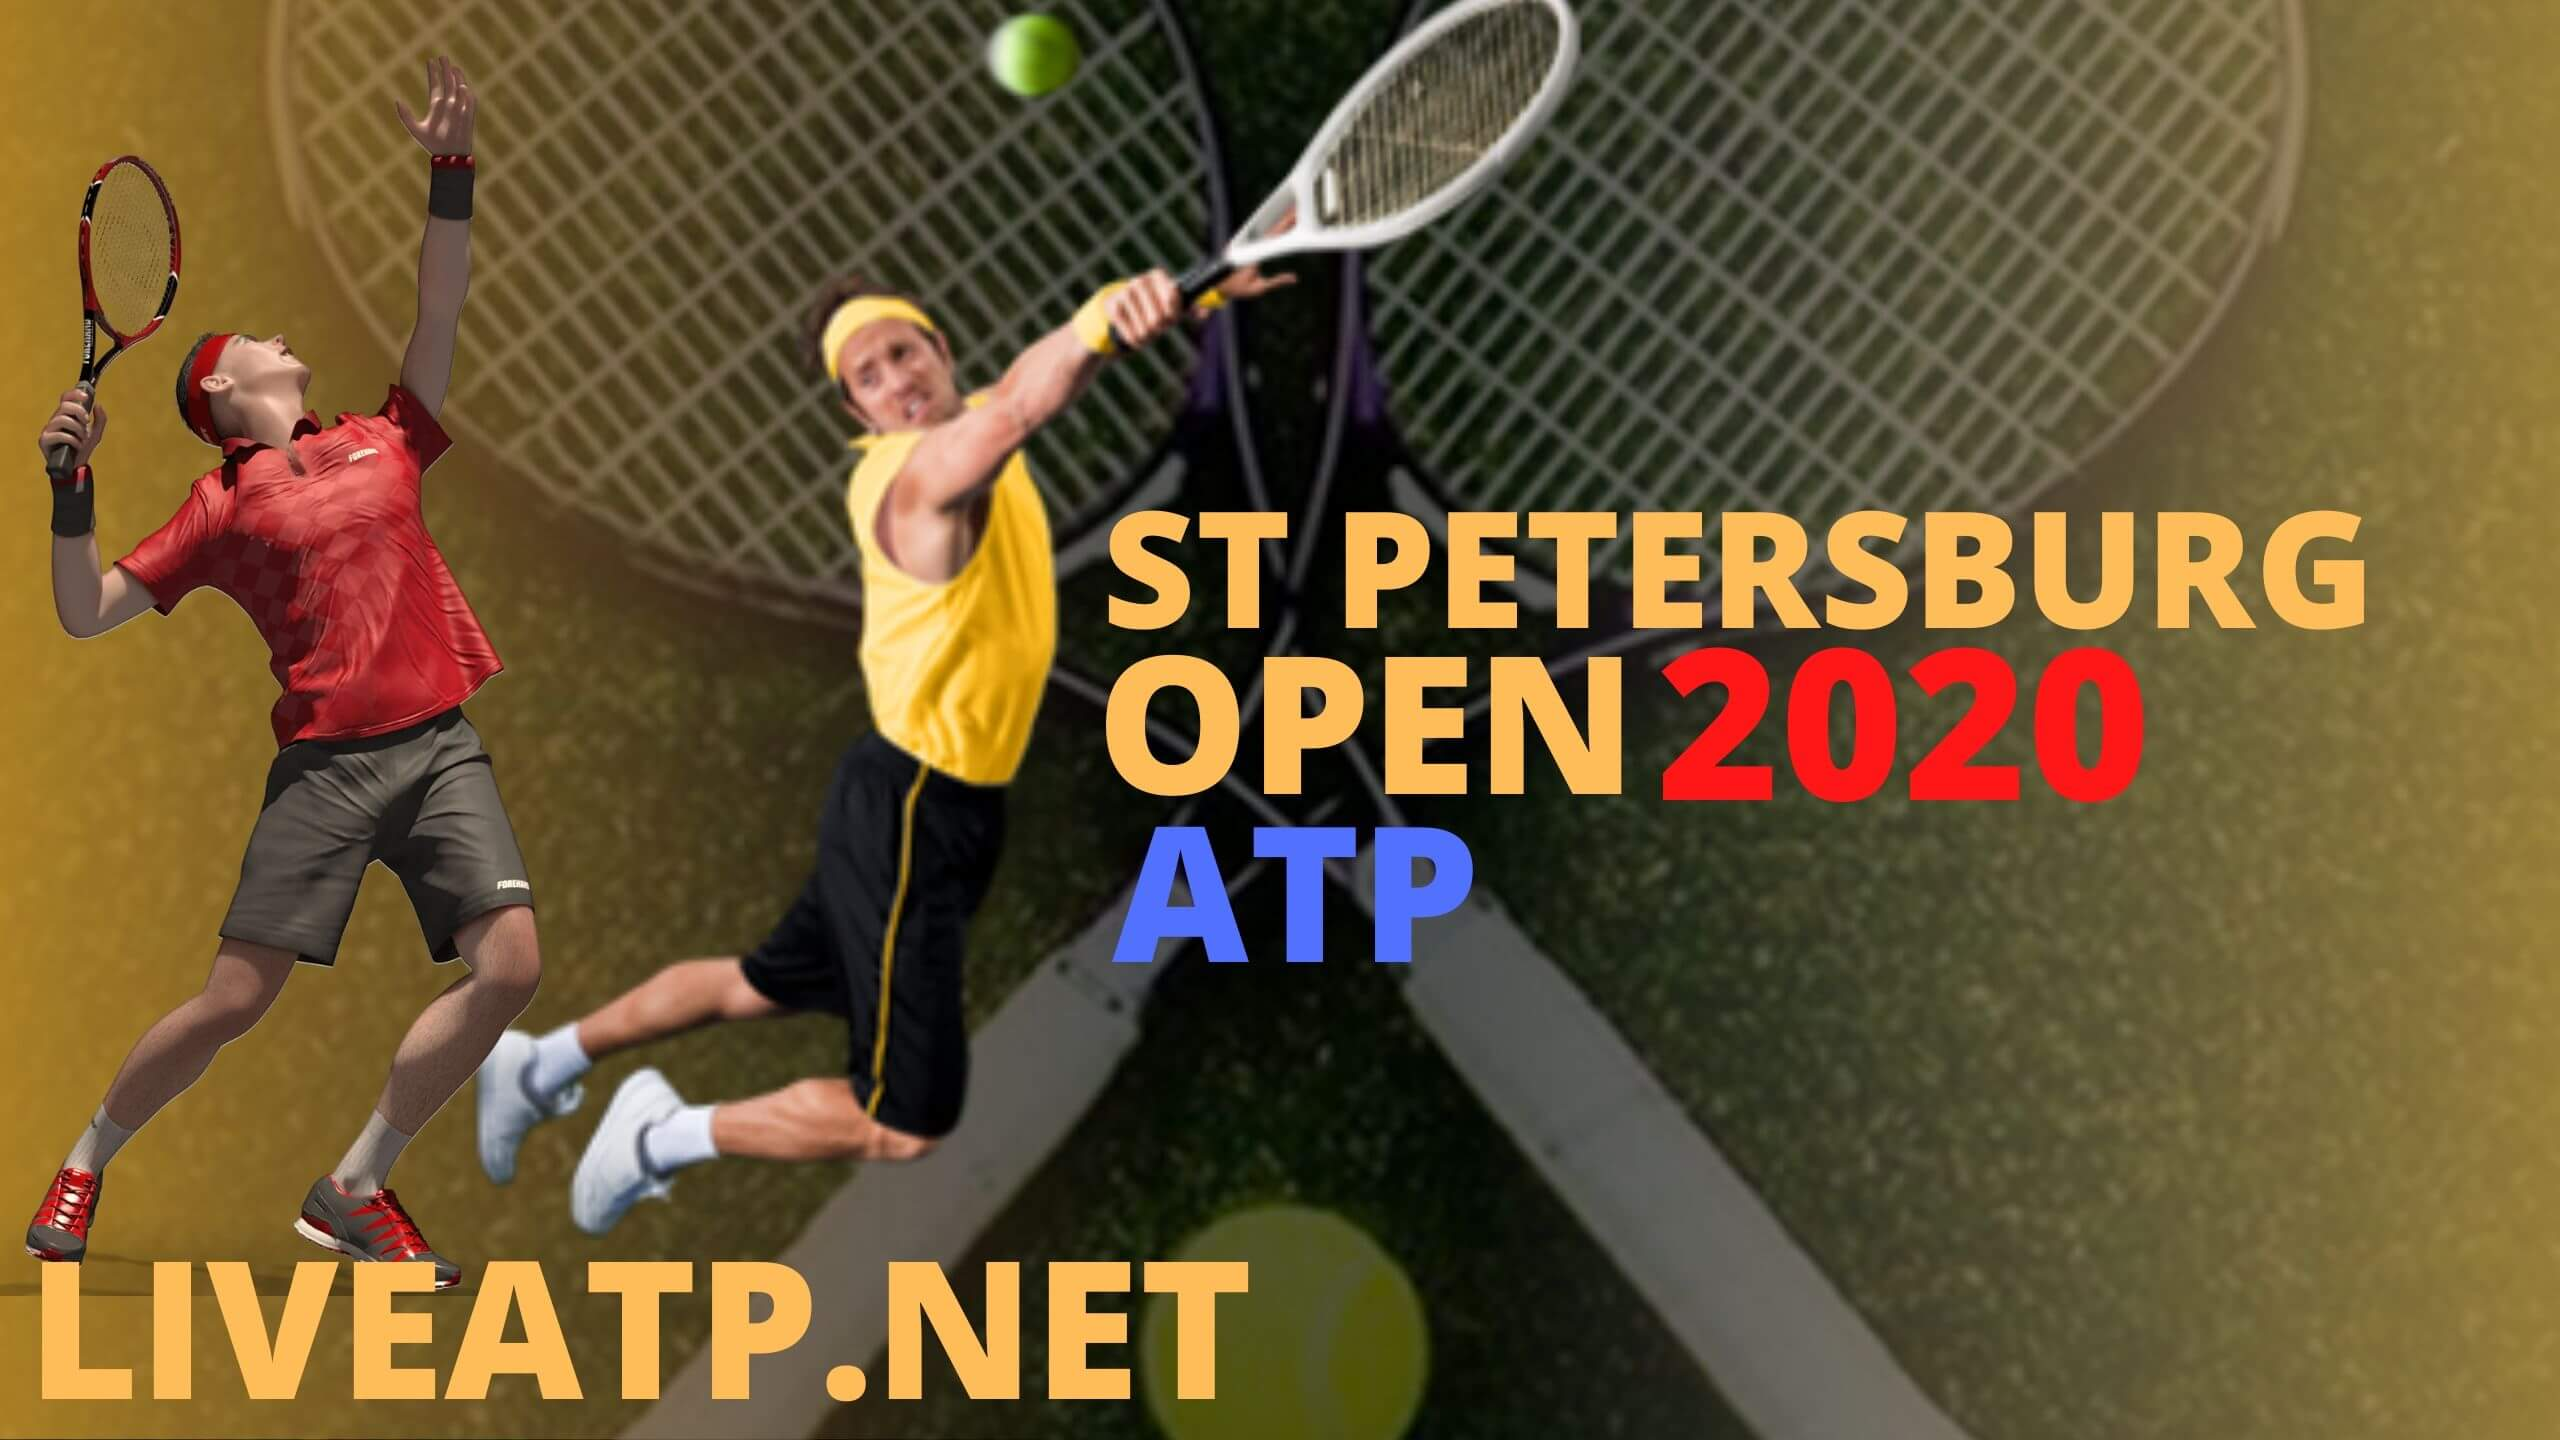 St Petersburg Open Live Stream 2020 | Day 2